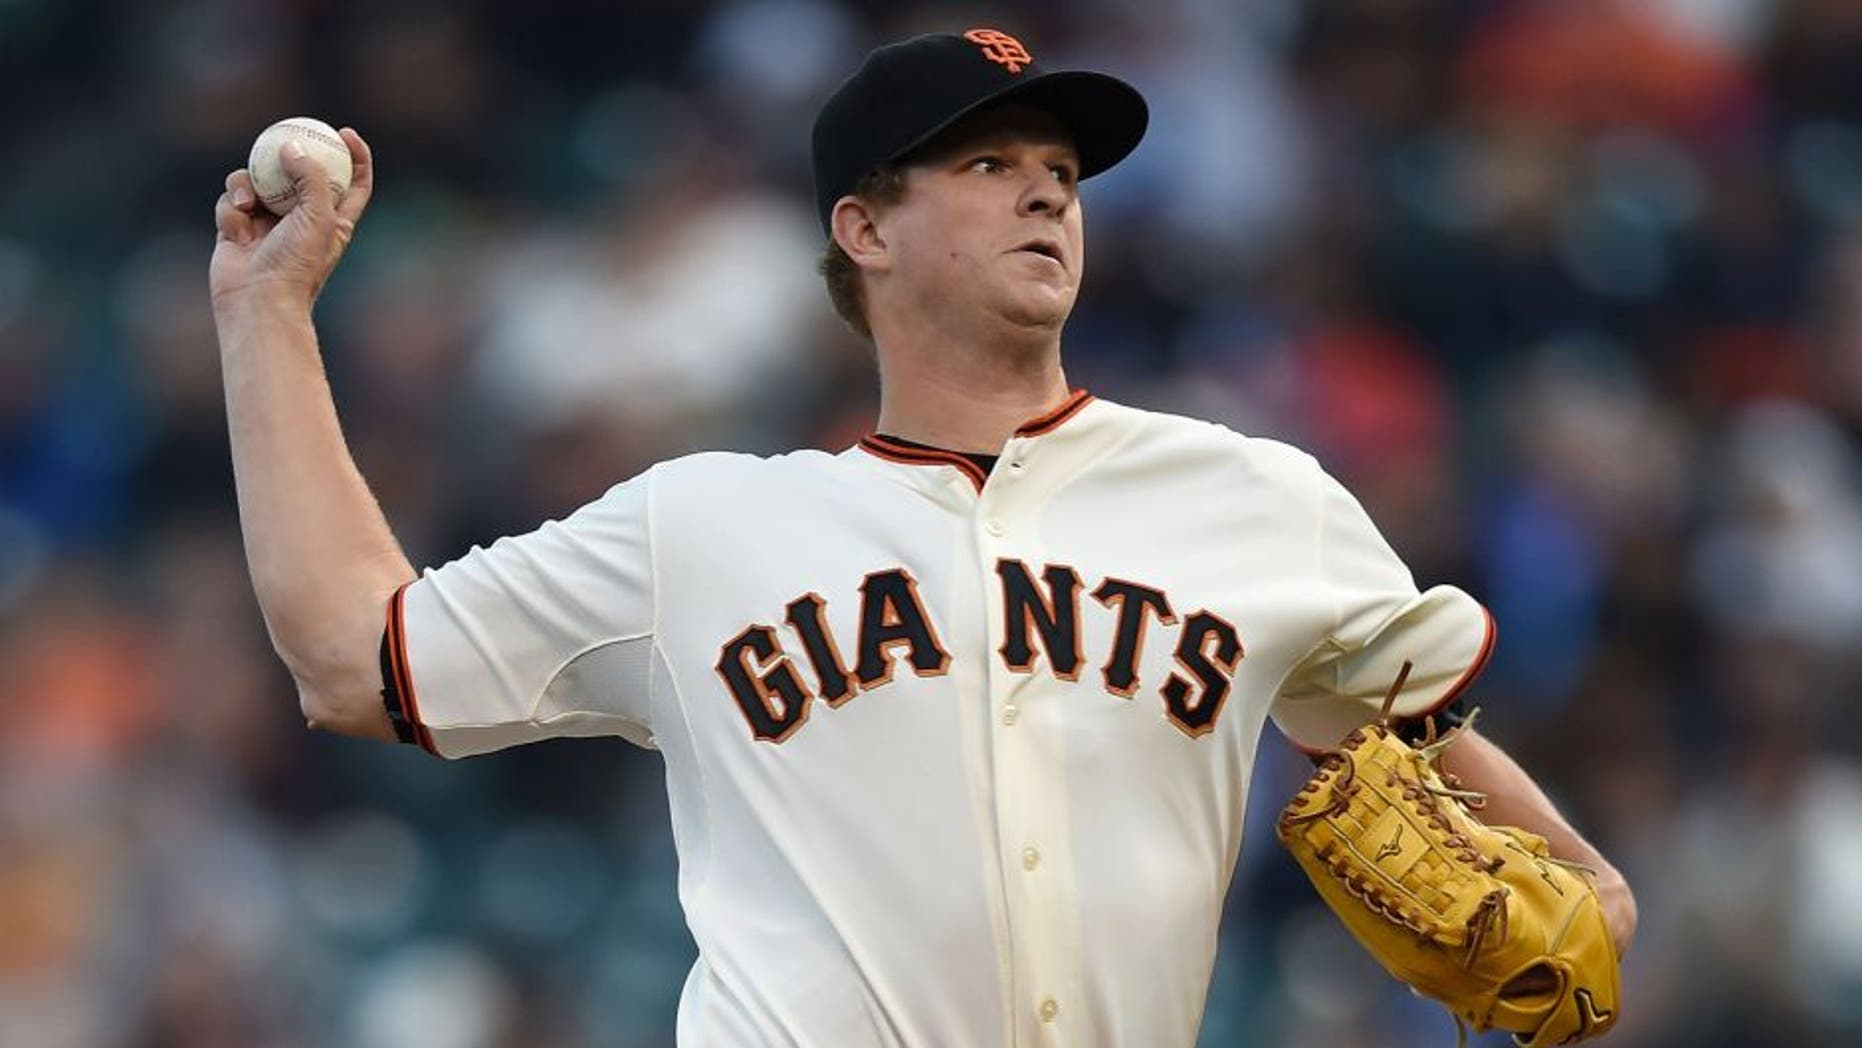 SAN FRANCISCO, CA - AUGUST 25: Matt Cain #18 of the San Francisco Giants pitches against the Chicago Cubs in the top of the first inning at AT&T Park on August 25, 2015 in San Francisco, California. (Photo by Thearon W. Henderson/Getty Images)